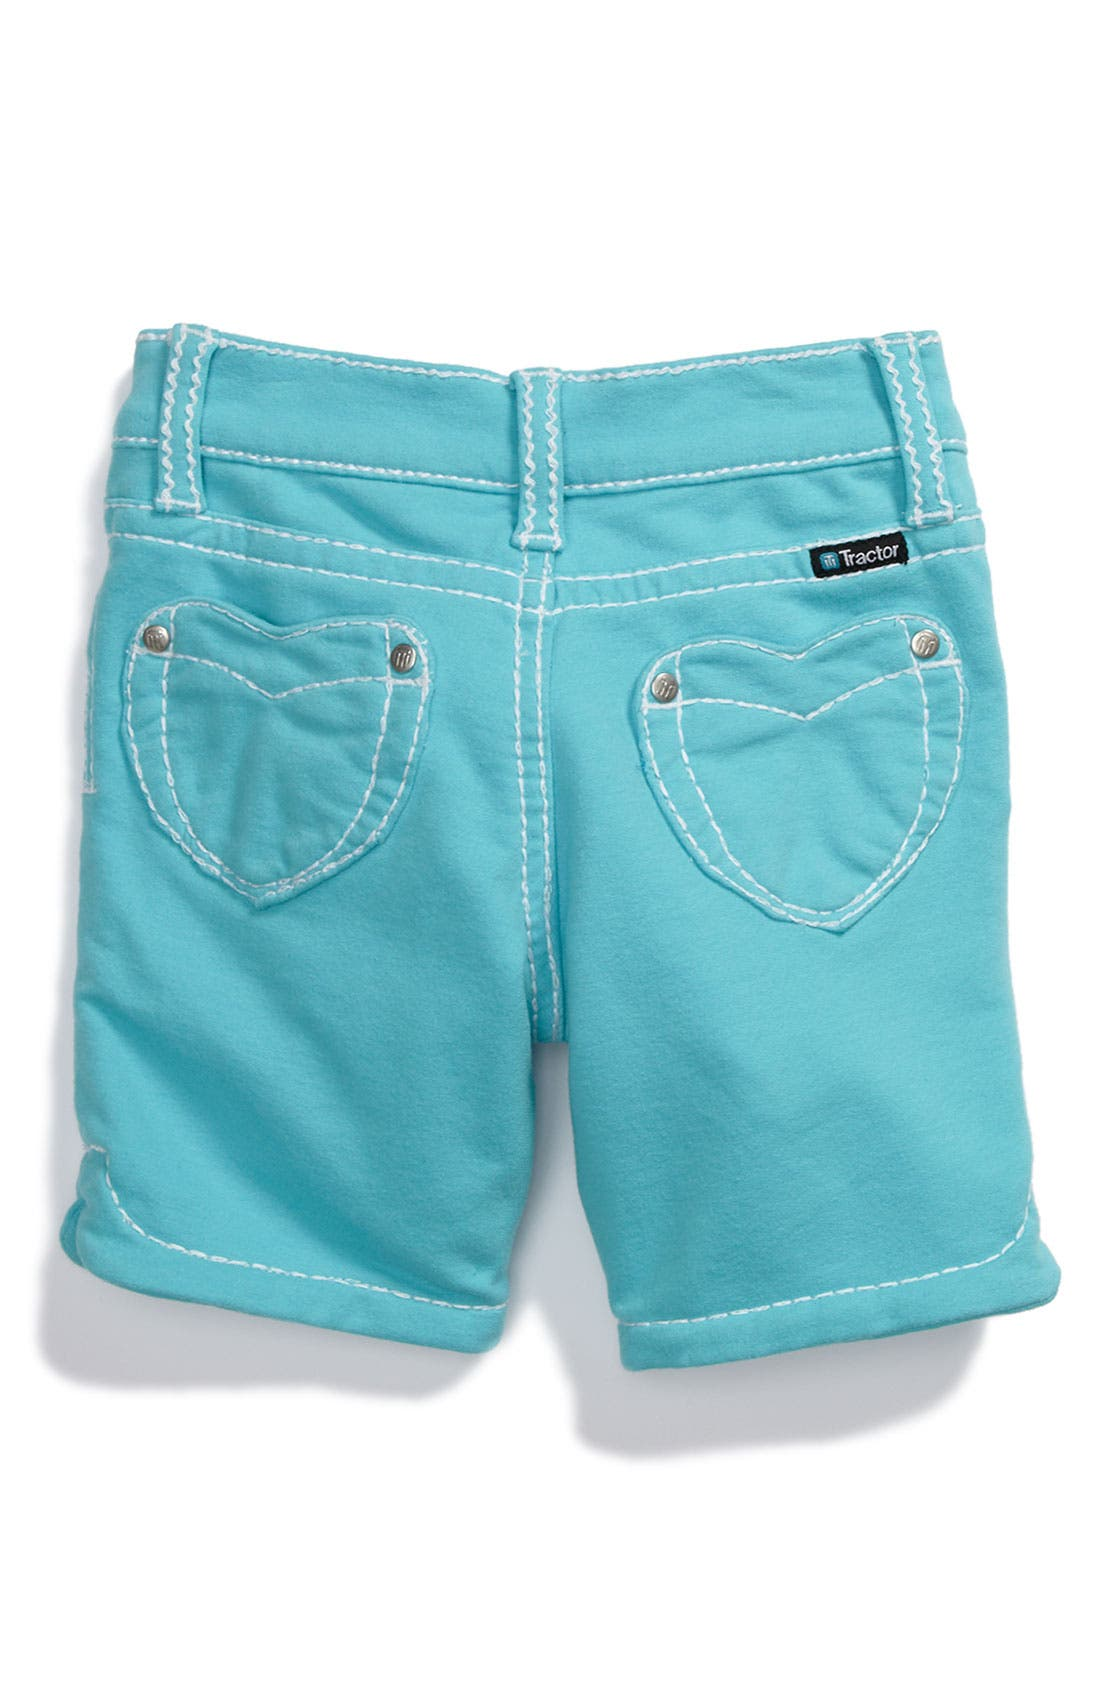 Alternate Image 1 Selected - Tractr 'Heart Pocket' French Terry Bermuda Shorts (Little Girls)